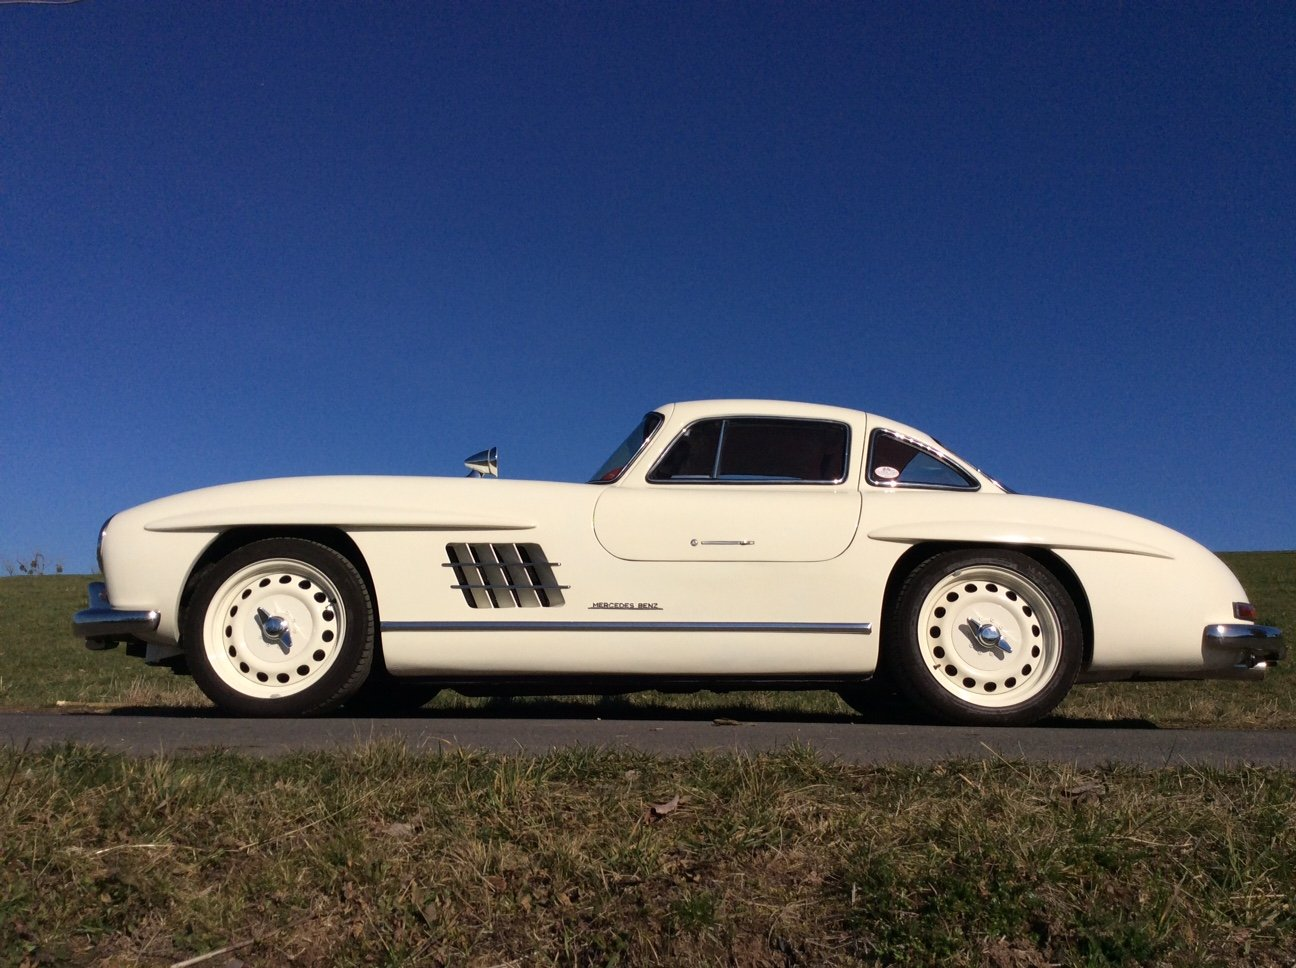 2002 Mercedes 300 SL Gullwing AMG 32 Kompr. Replica For Sale (picture 2 of 6)